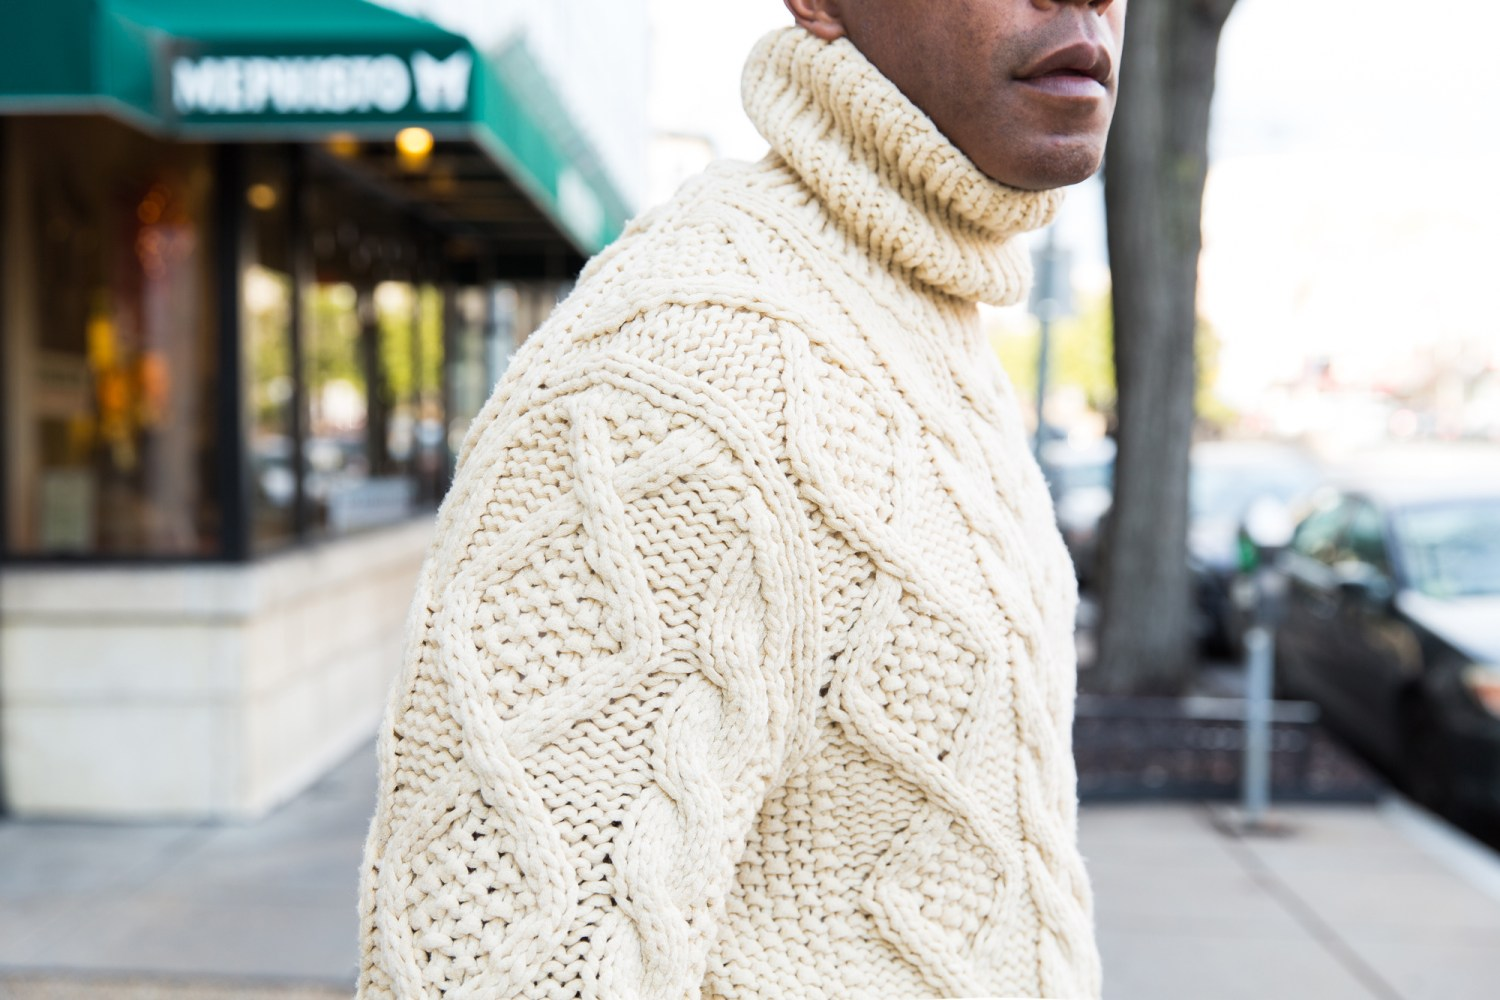 Chunky Sweater in Dupont Circle